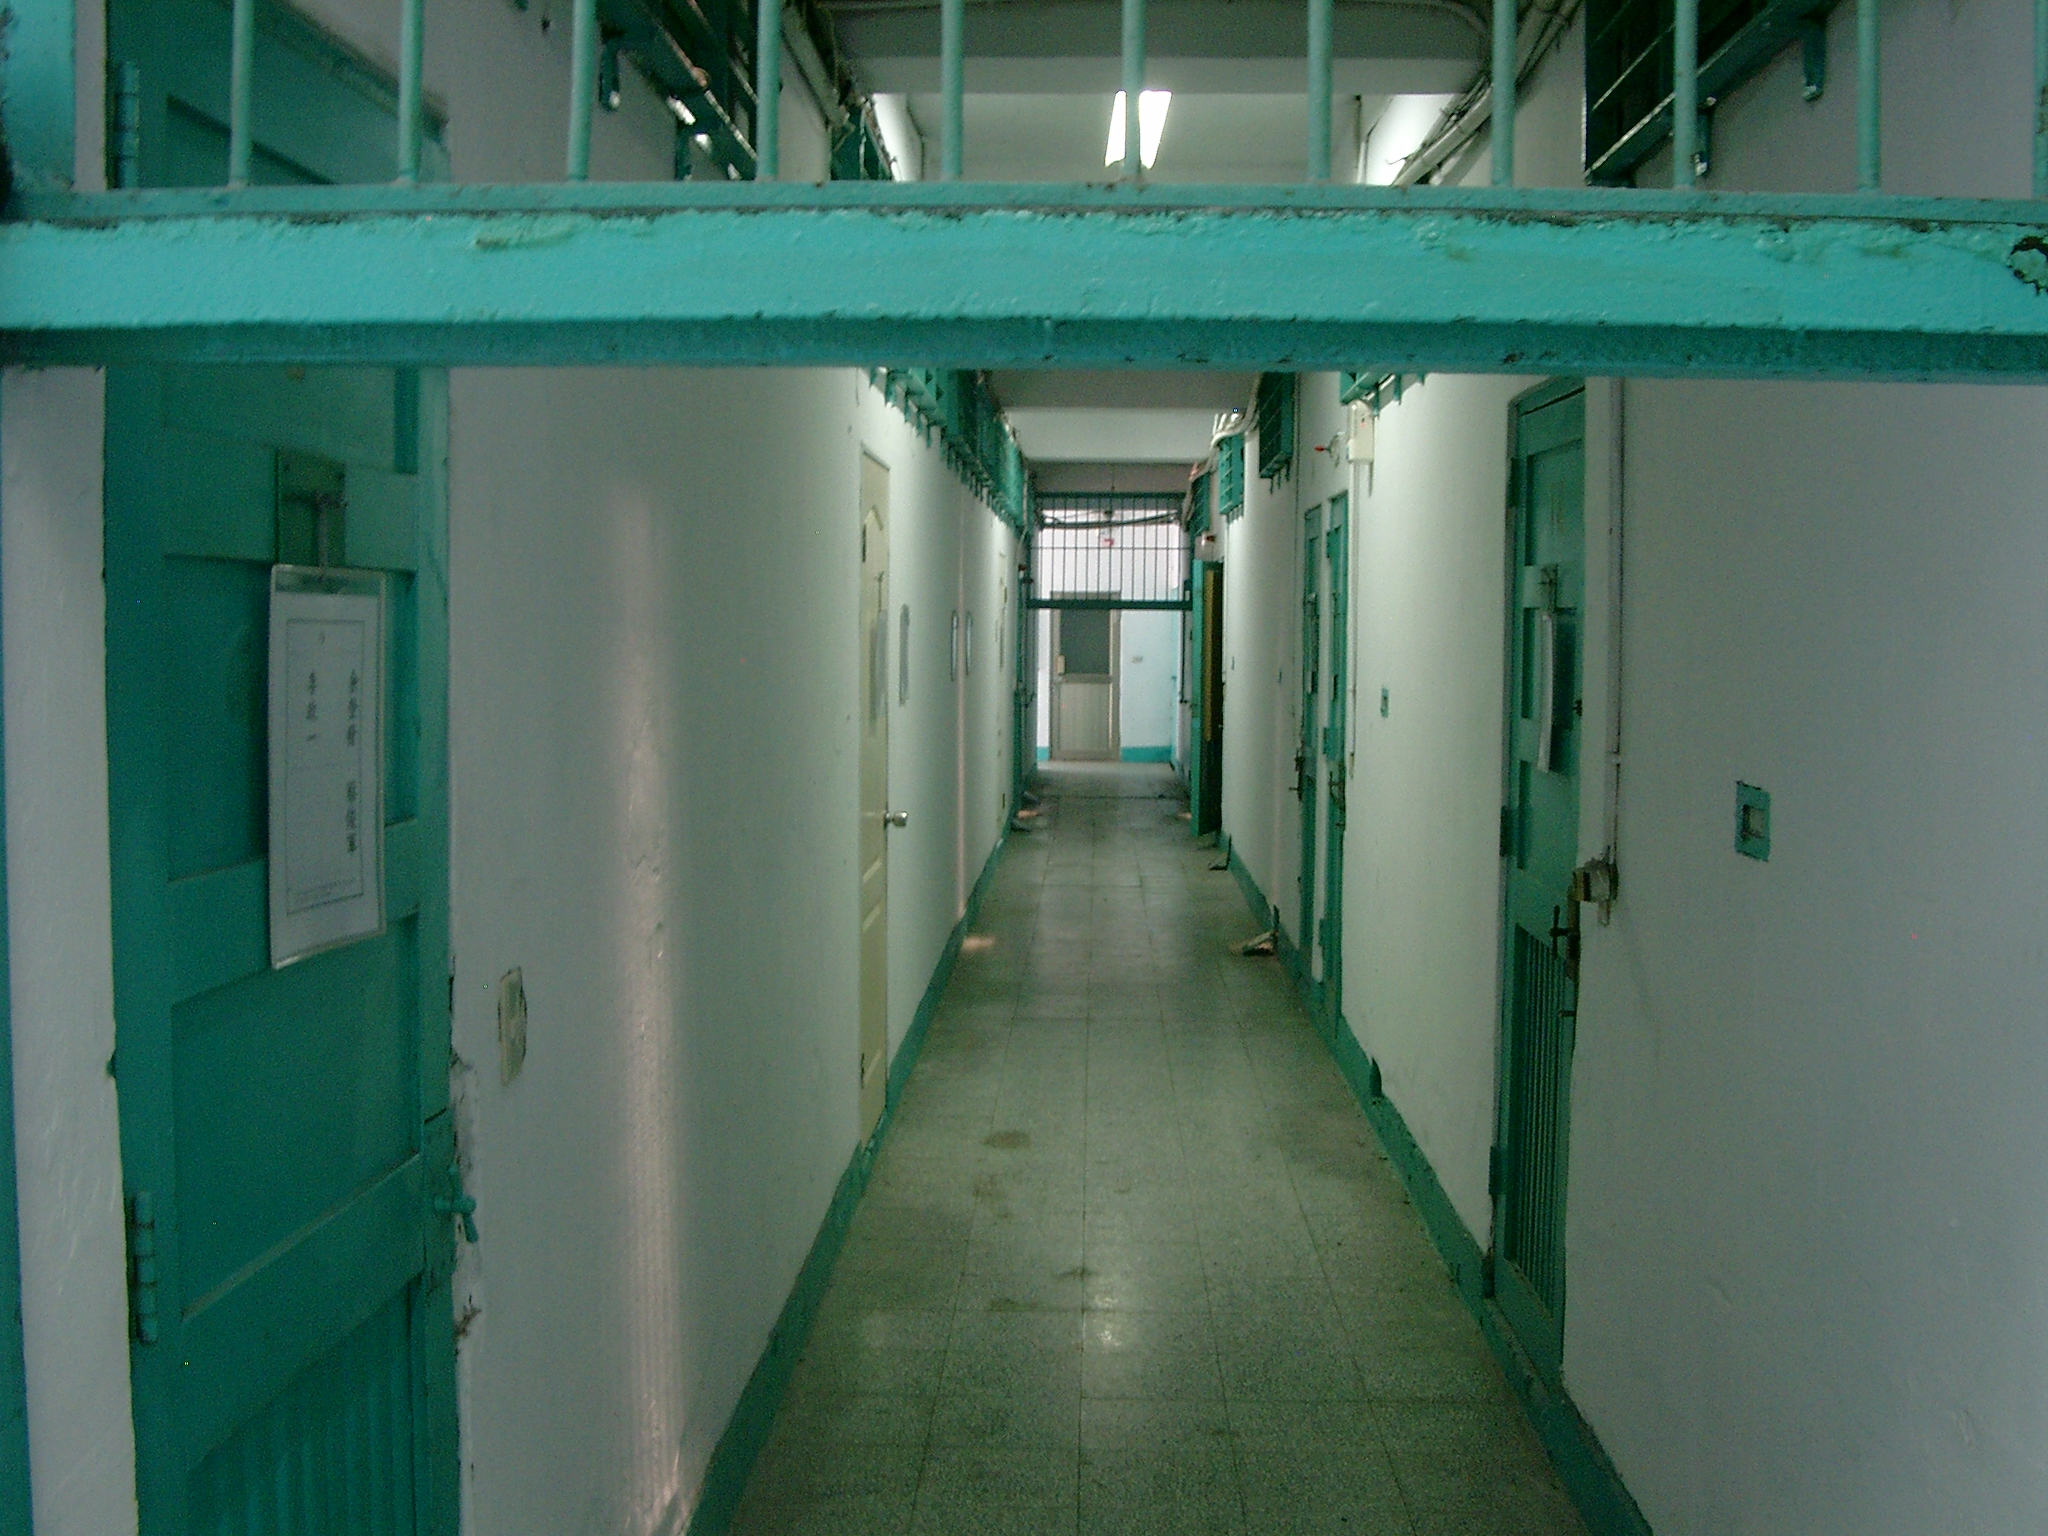 Jingmei Human Rights Memorial prison cell tract